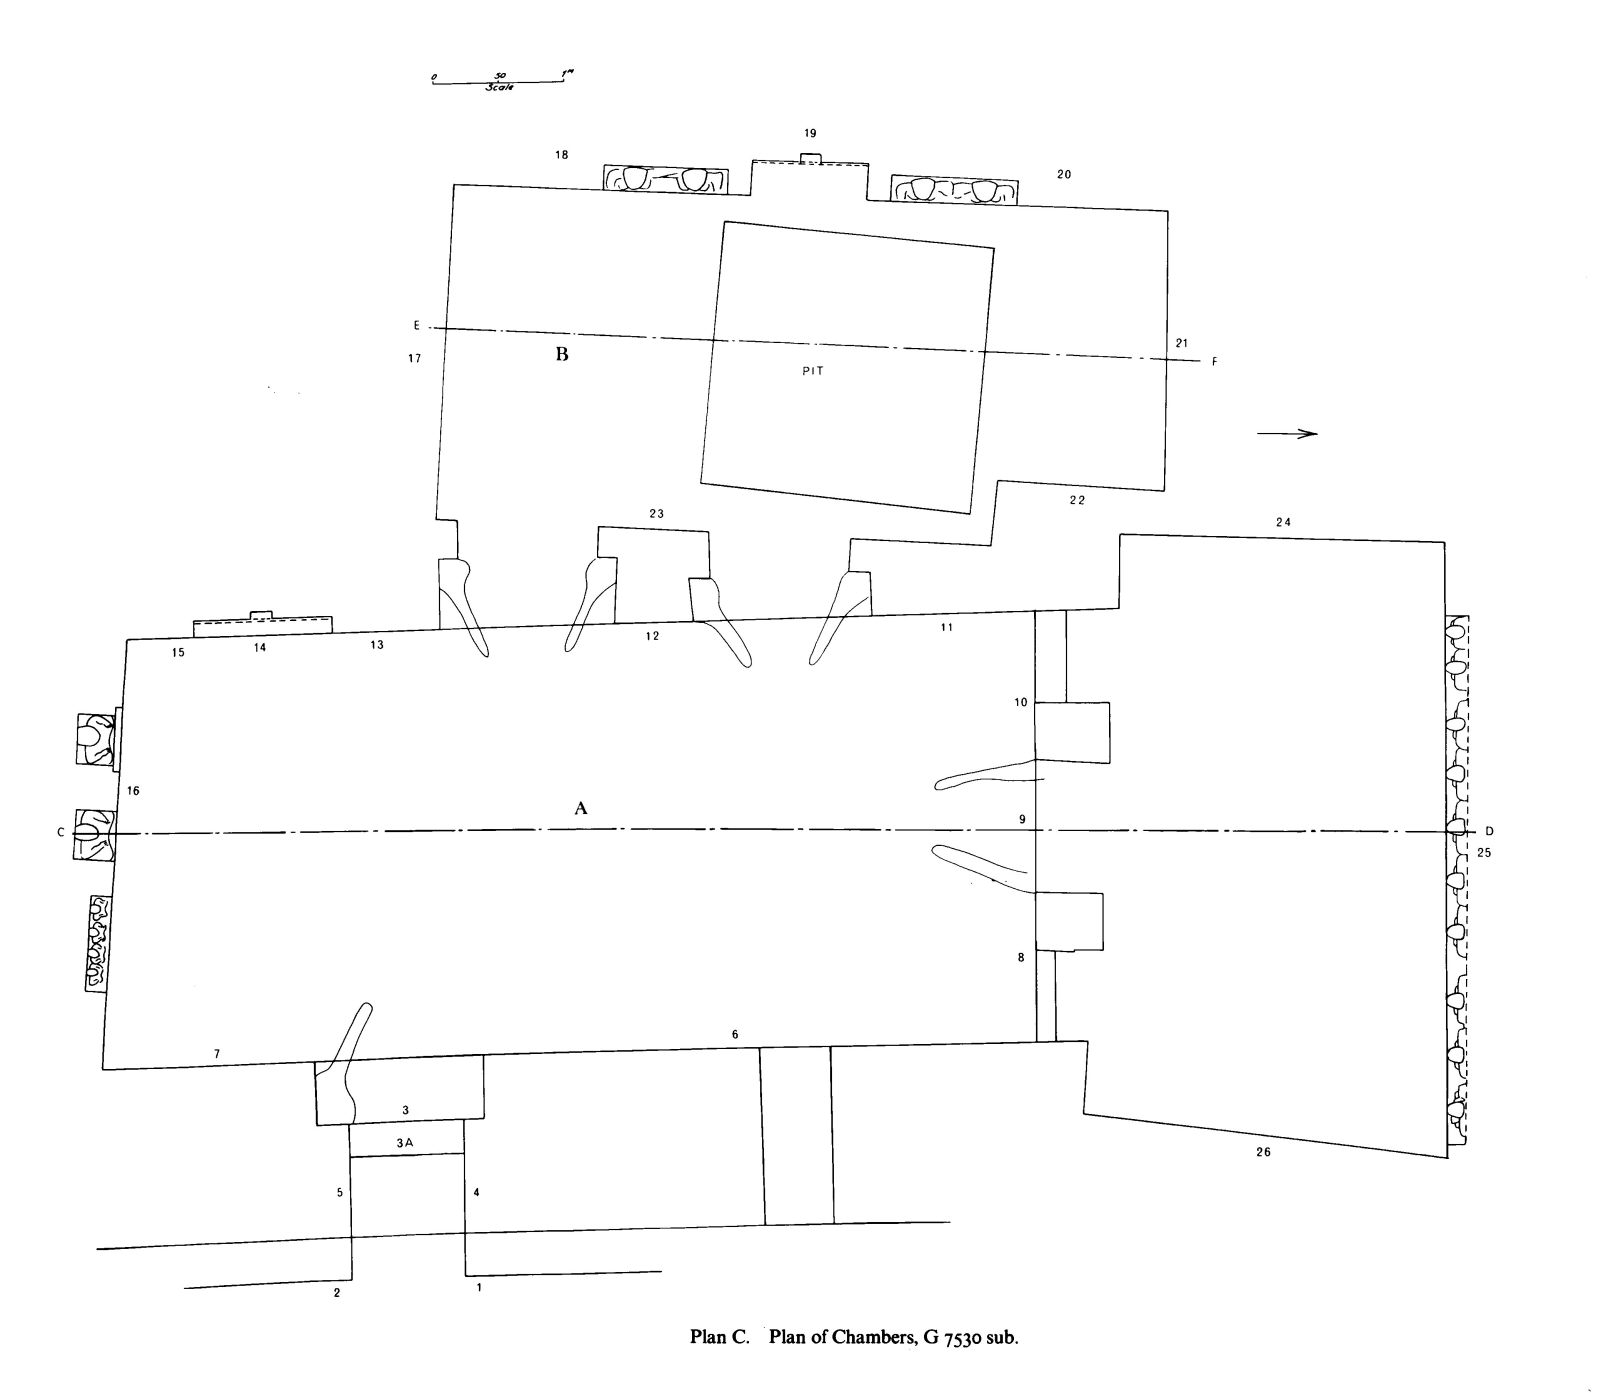 Maps and plans: Plan of G 7530 sub, chambers